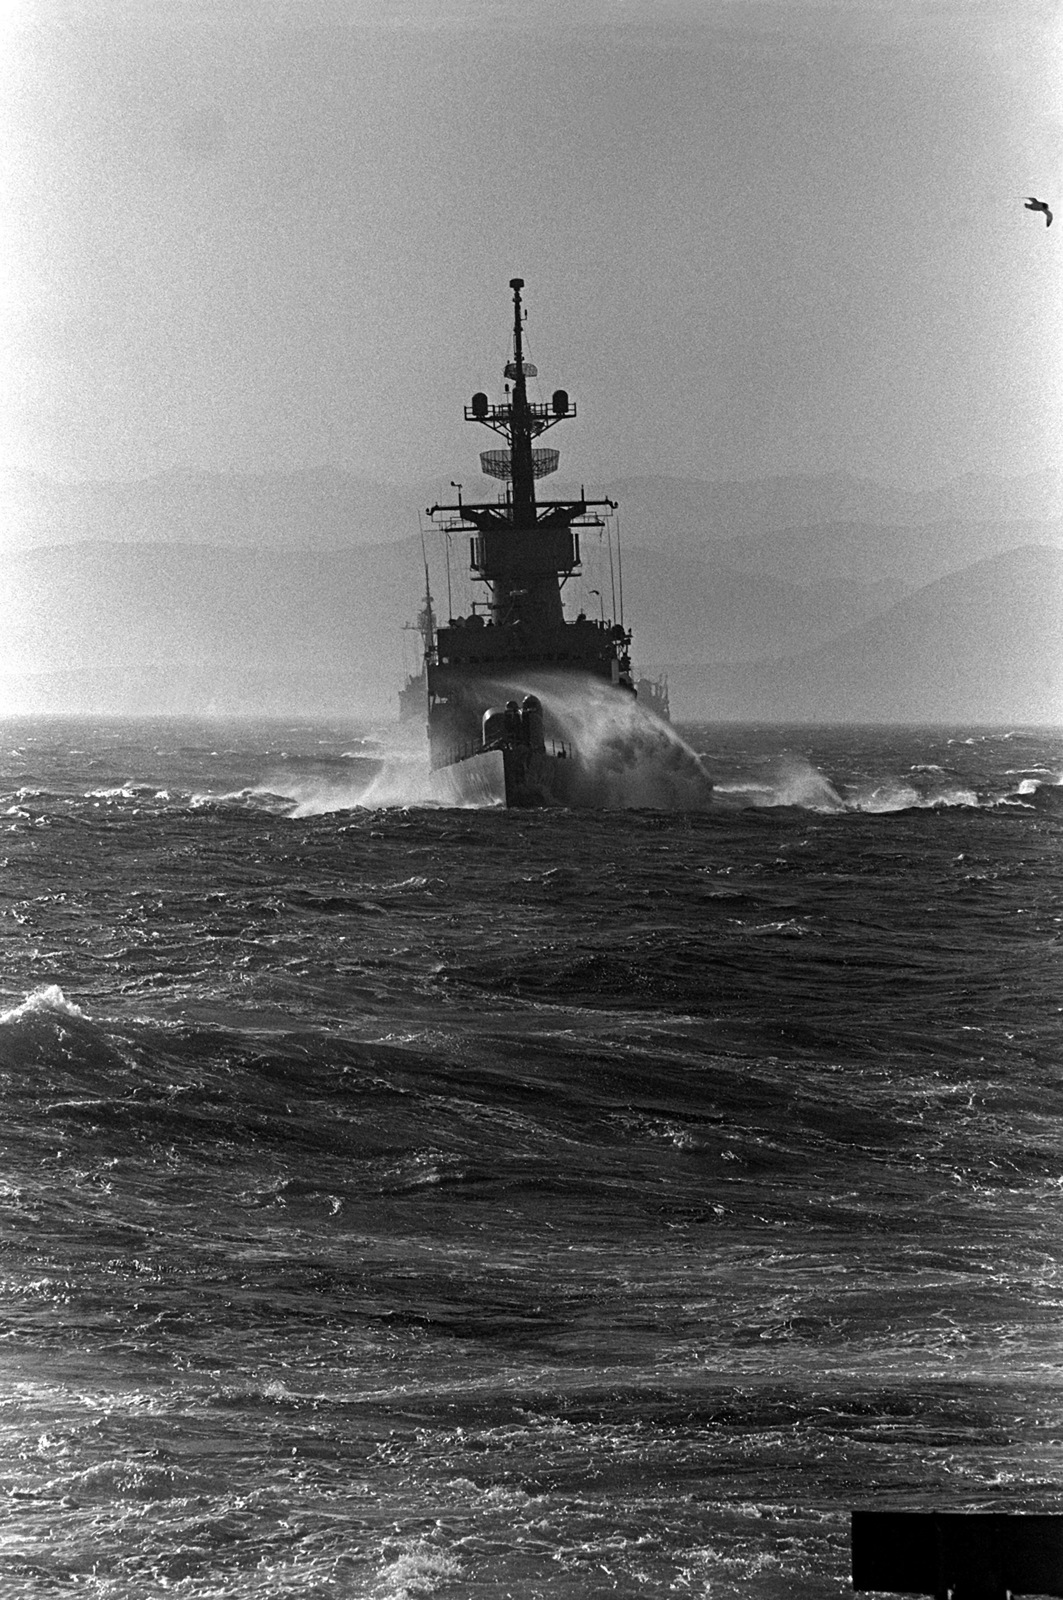 A wake washes over the port bow of the frigate USS JESSE L. BROWN (FF-1089) during exercise Unitas XX